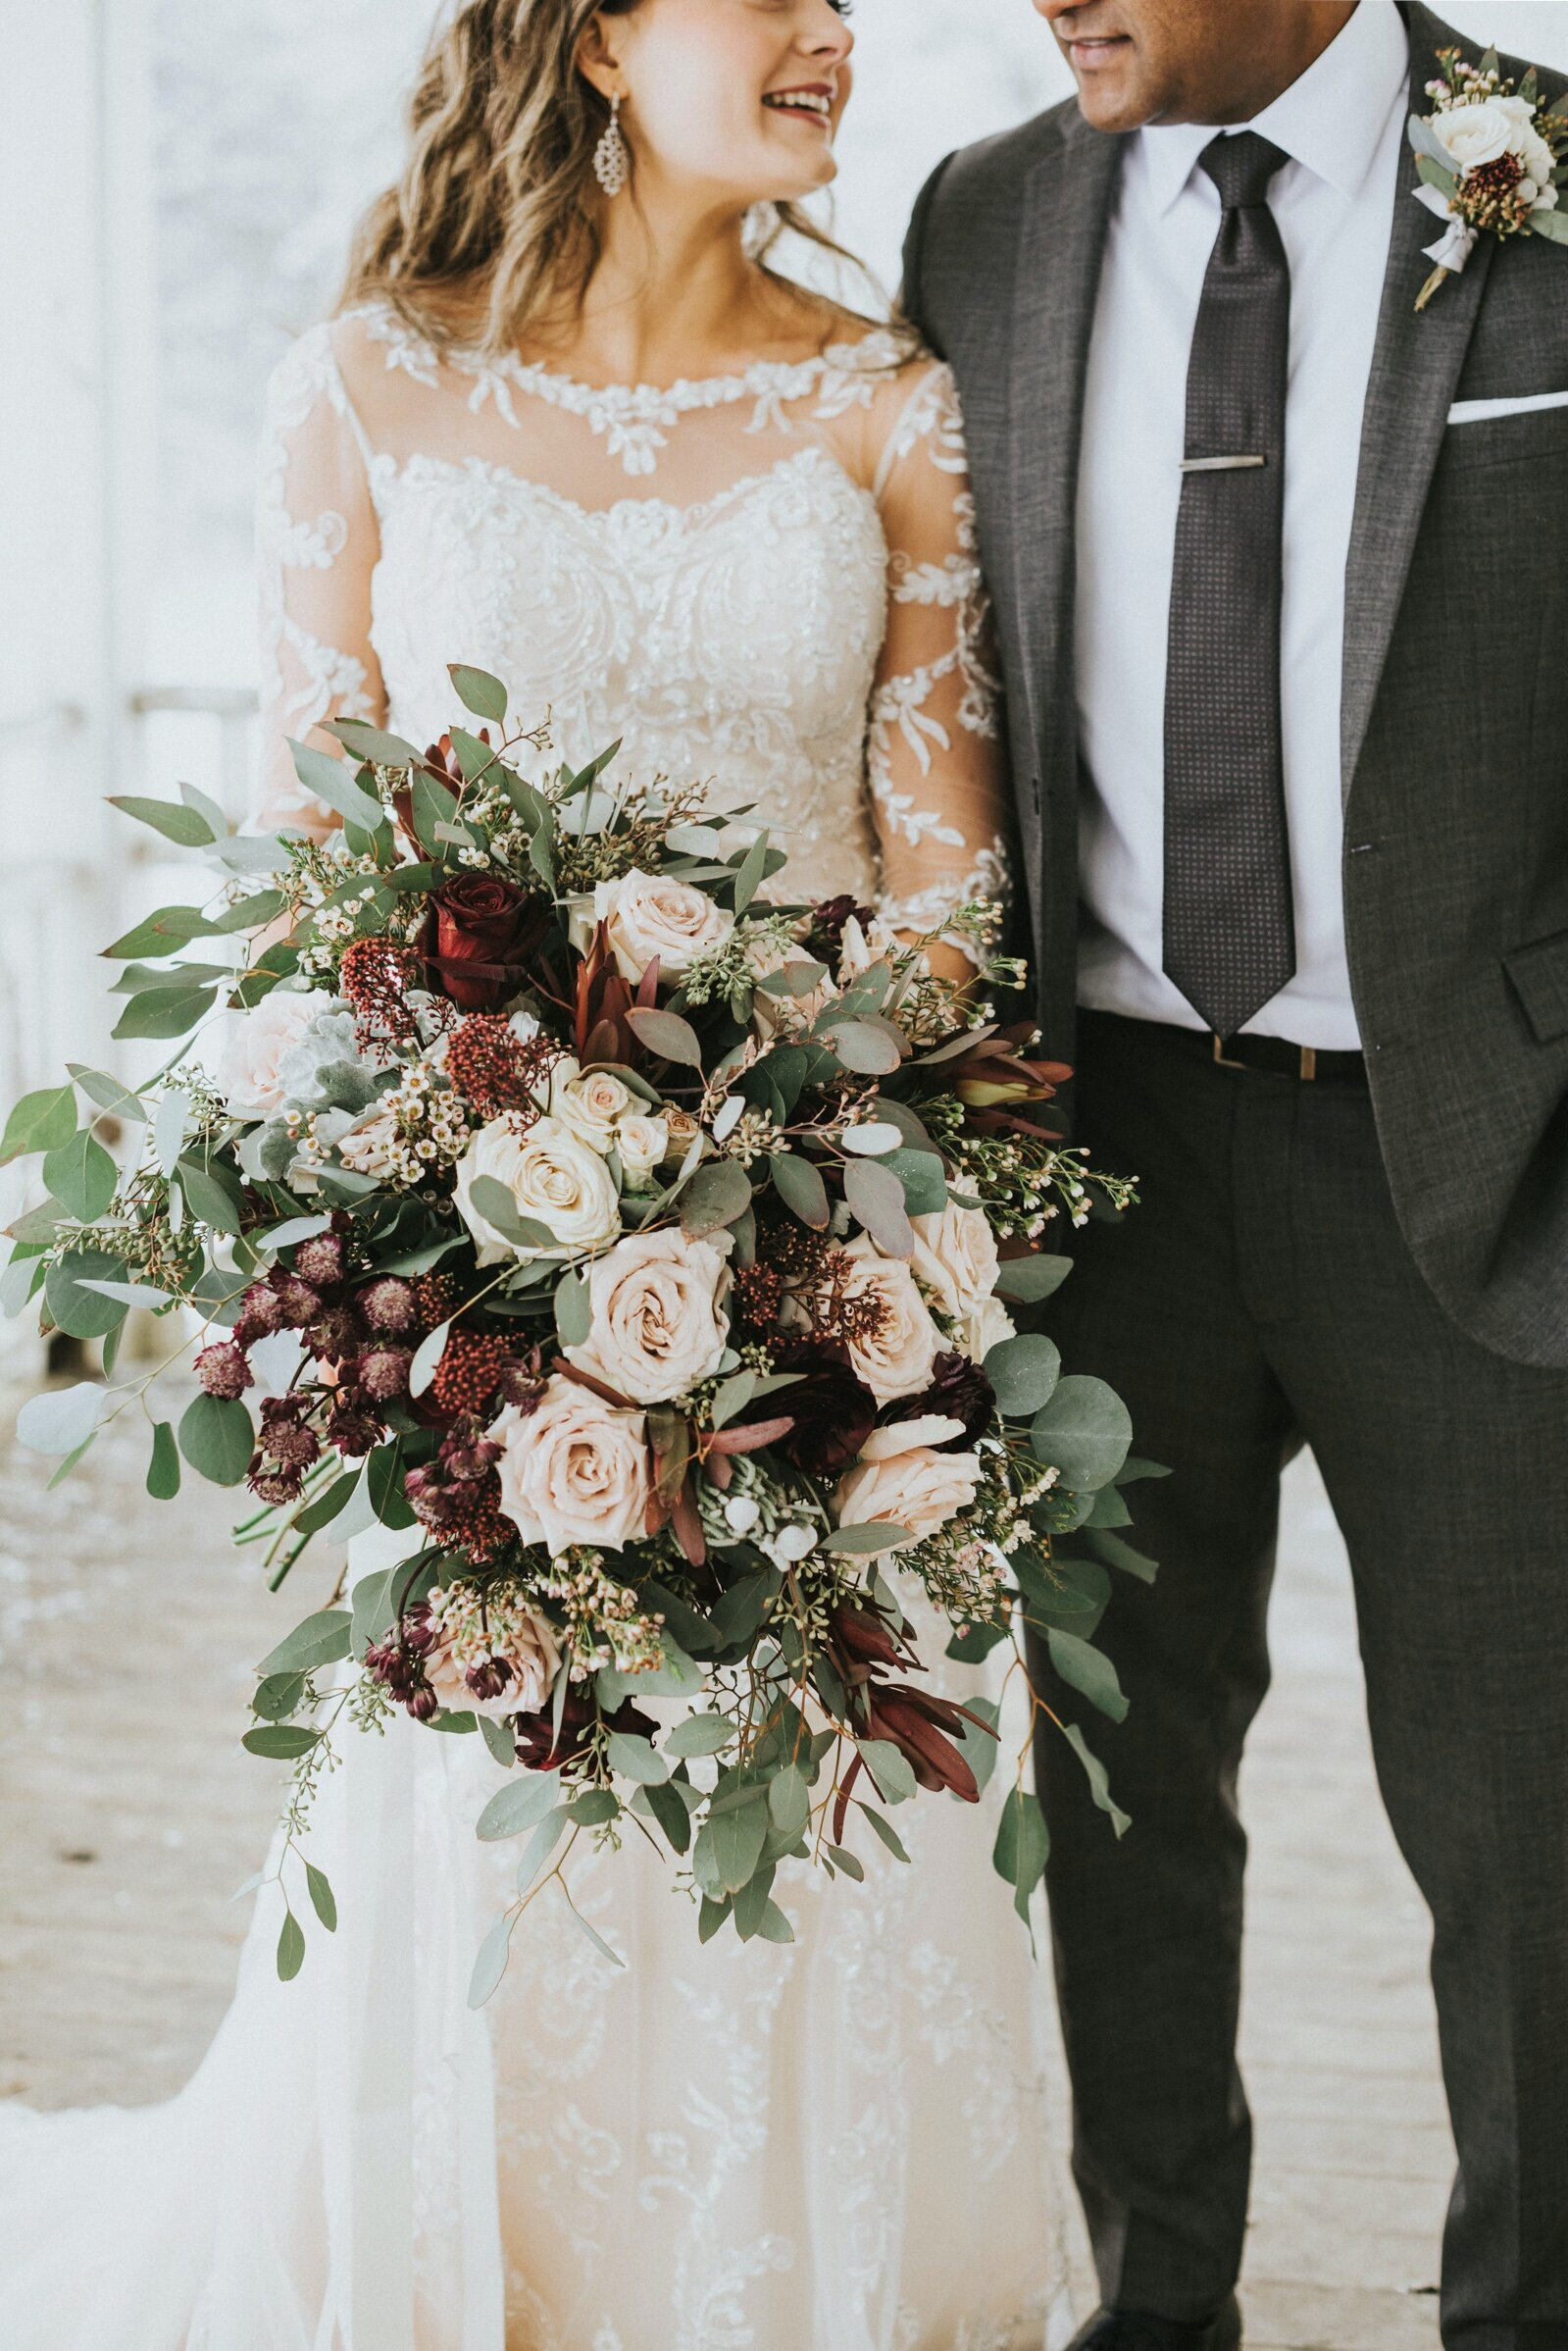 Bouquet of pink, white and burgundy roses, dusty miller, eucalyptus and wax flowers